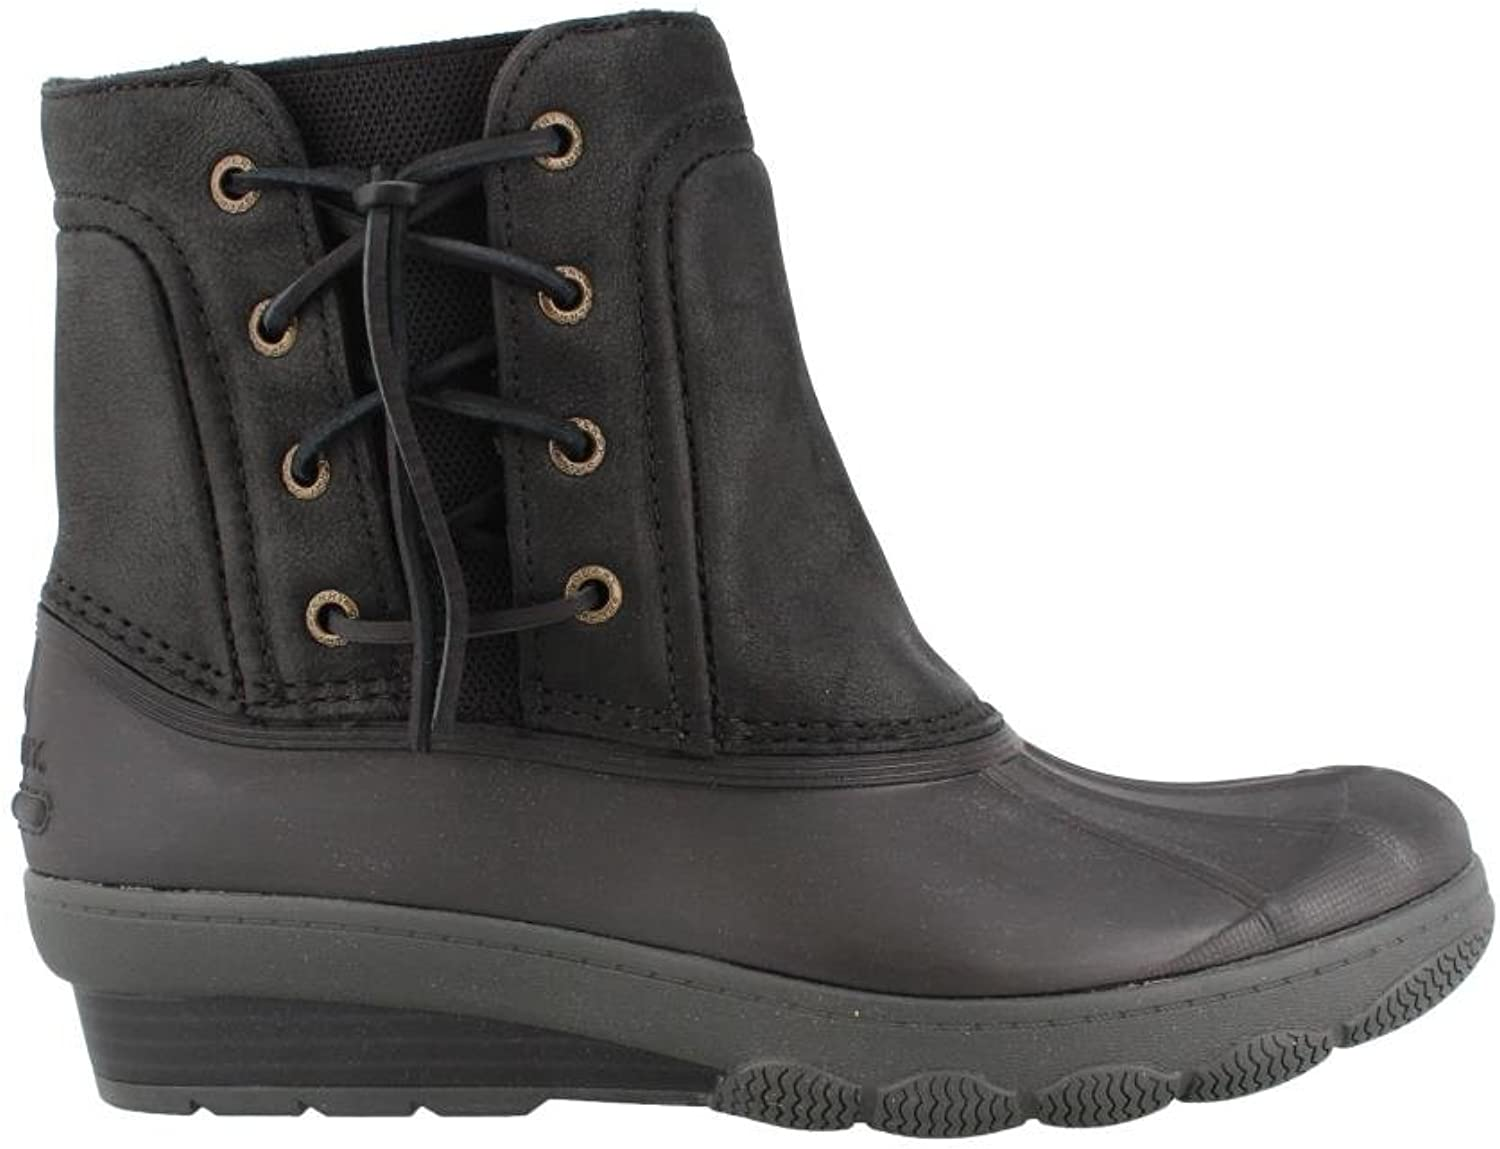 Sperry Top-Sider Women's Saltwater Wedge Tide Rain Boot